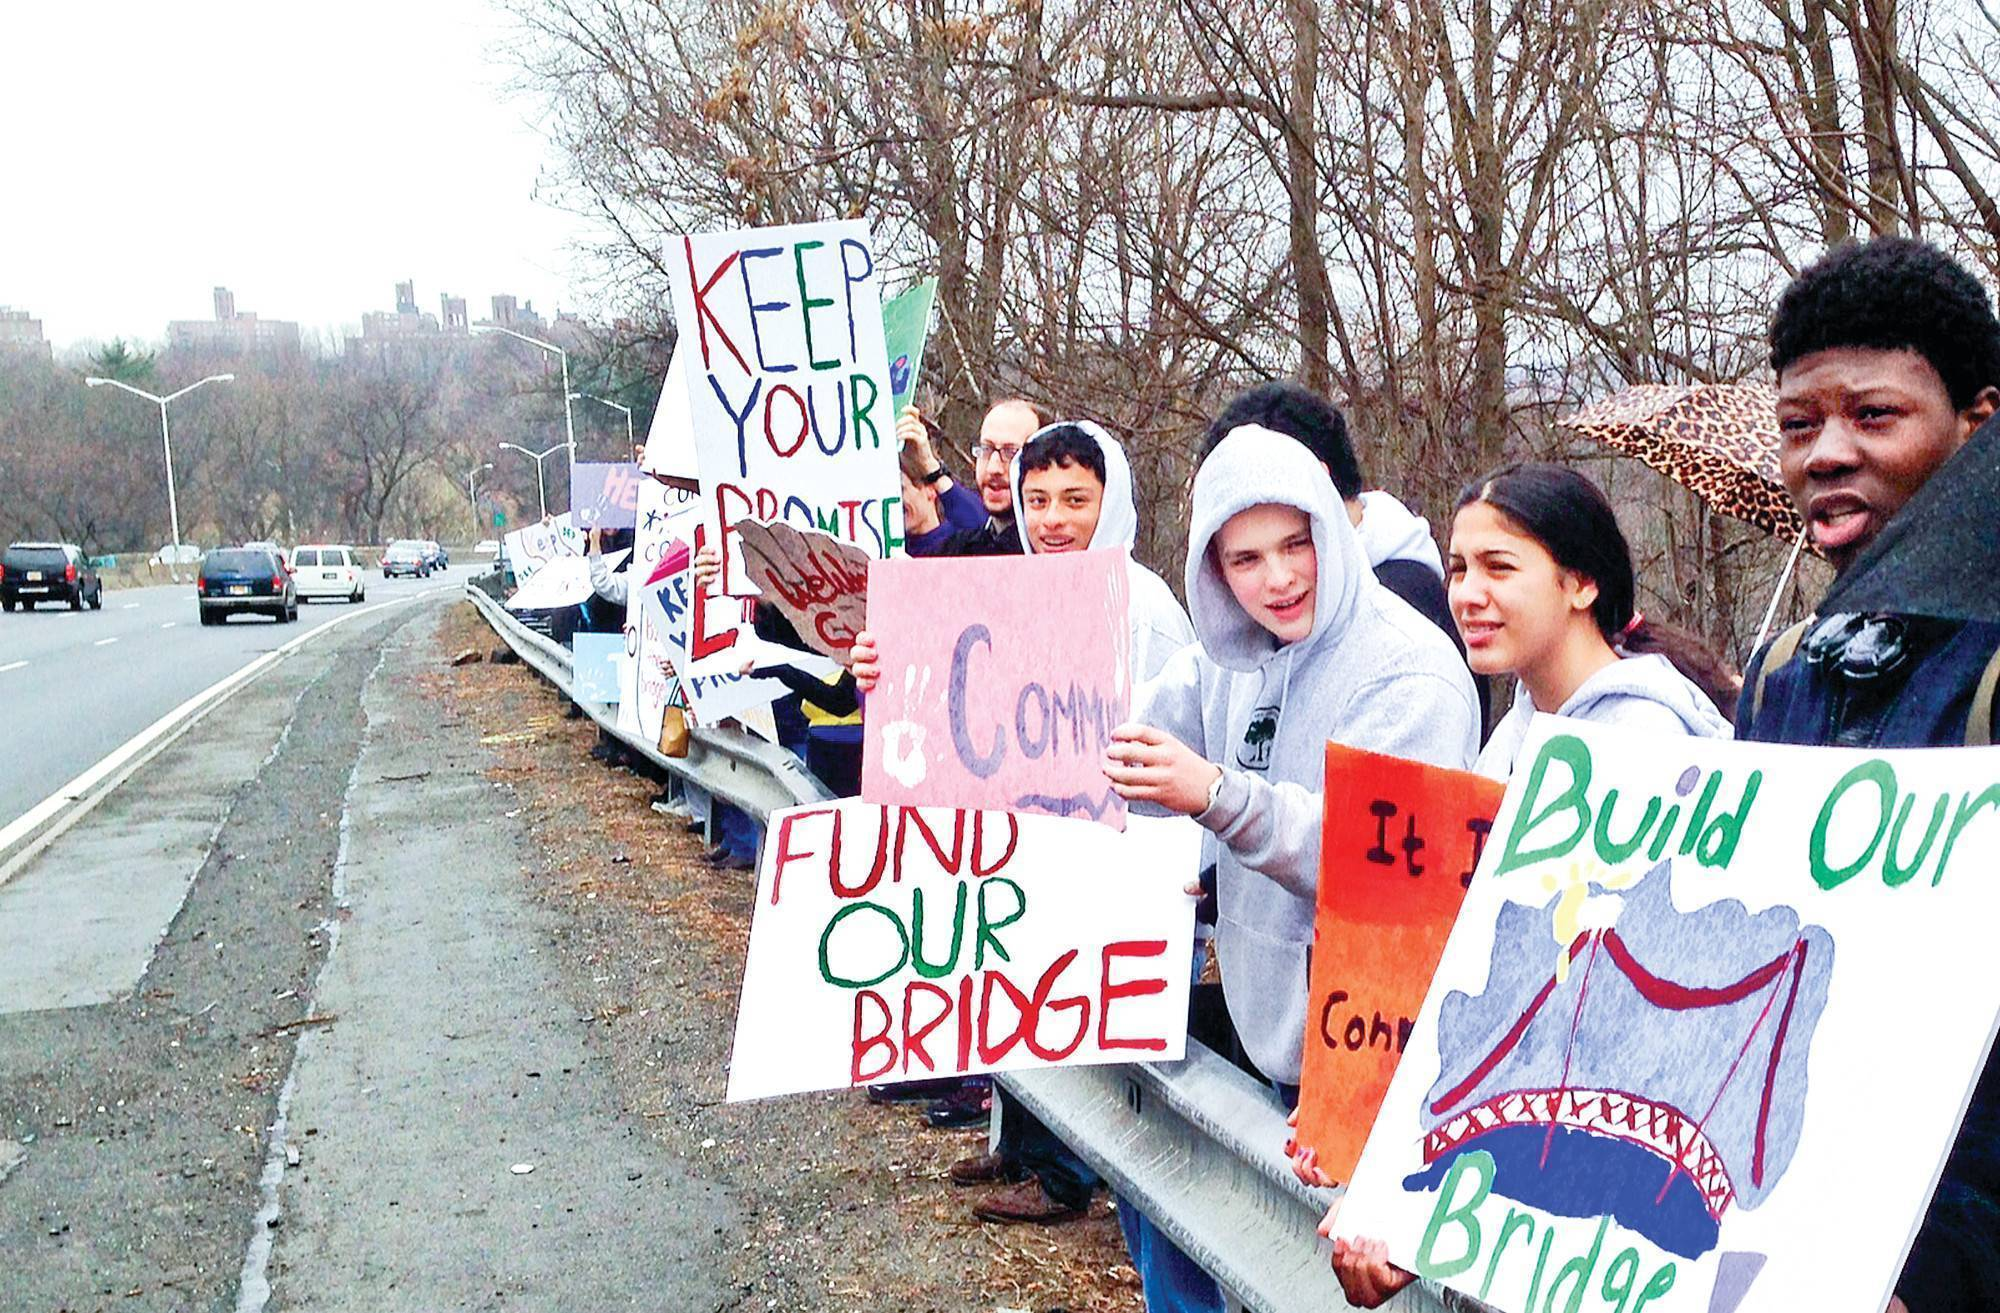 Protesters gather along the Major Deegan Expressway on Saturday to demand a pedestrian footbridge that they say is long overdue even though a city agency calls the issue a non-starter.